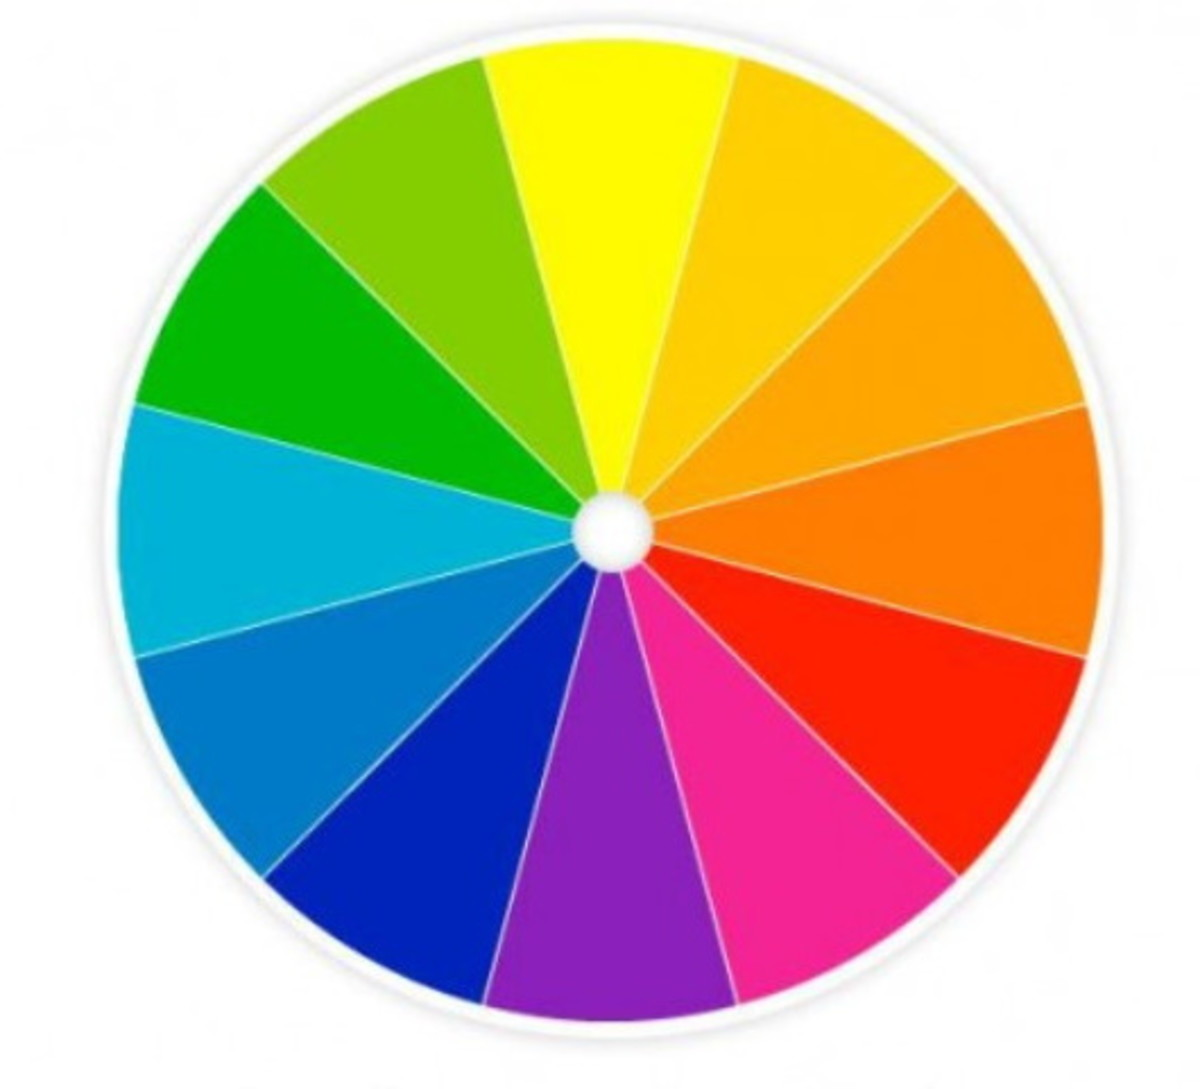 Generally colors on the opposite side of a color wheel will always emphasize each other more.